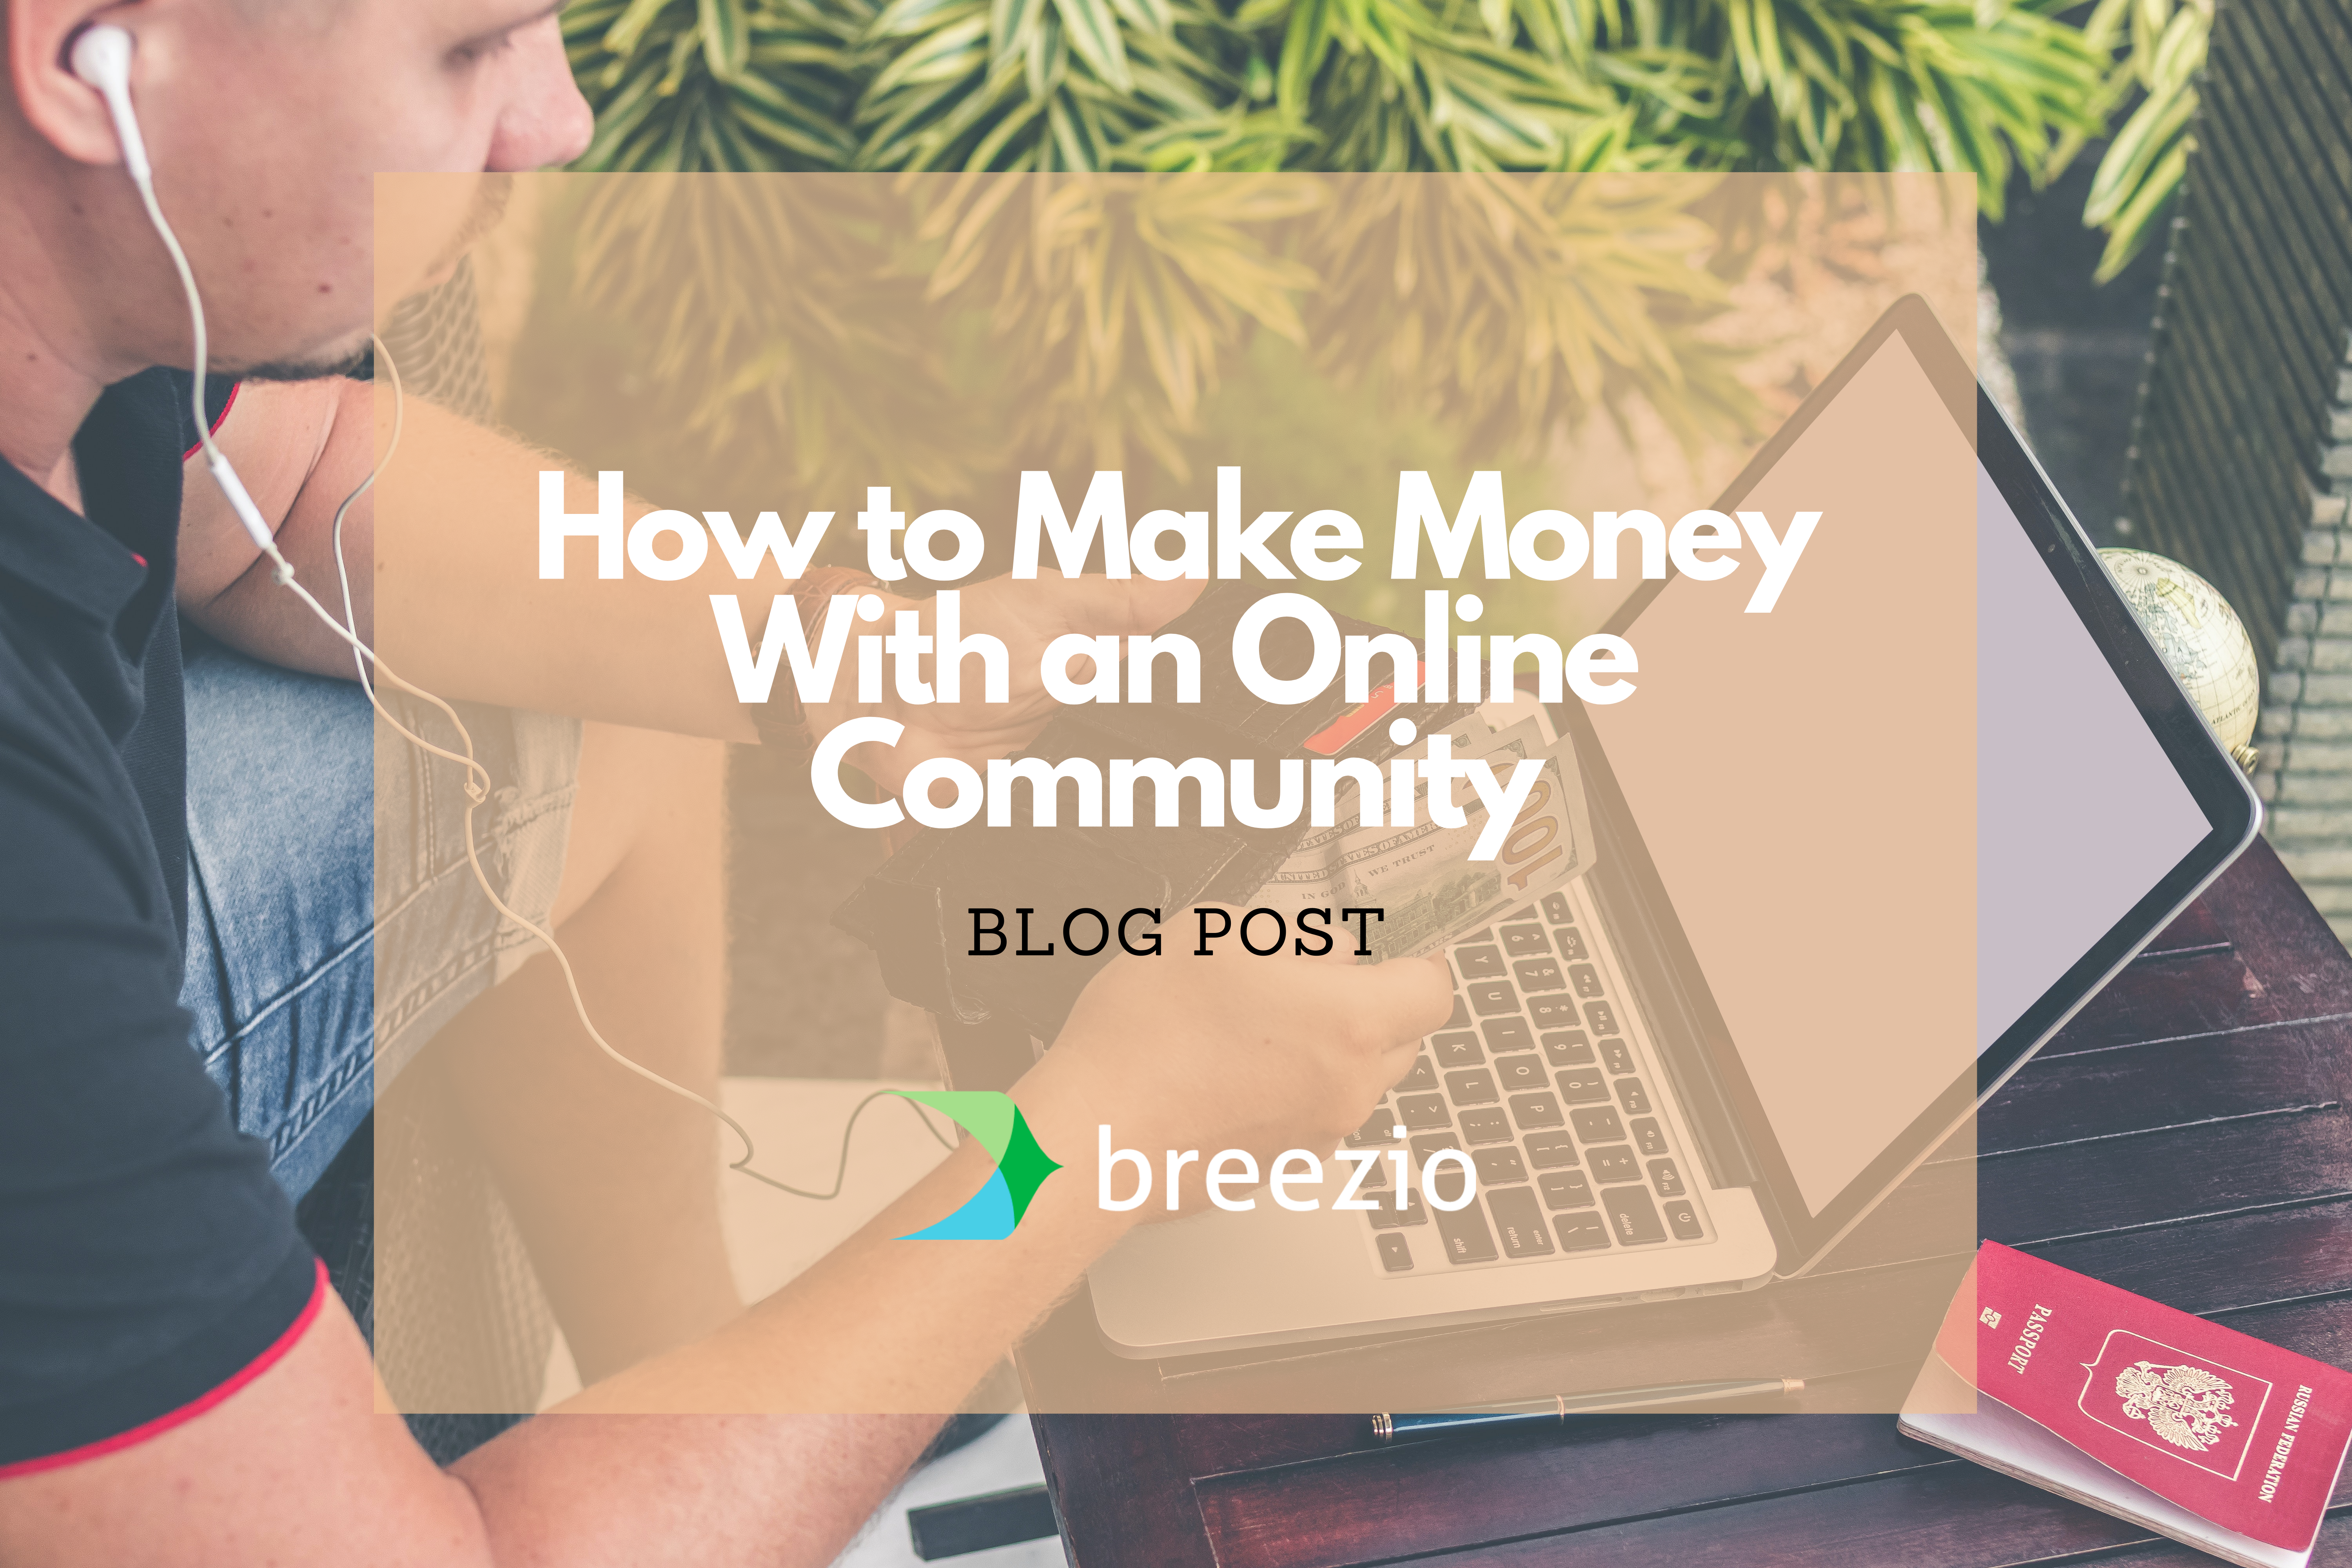 Diversifying Revenue Stream - How to Make Money With an Online Community